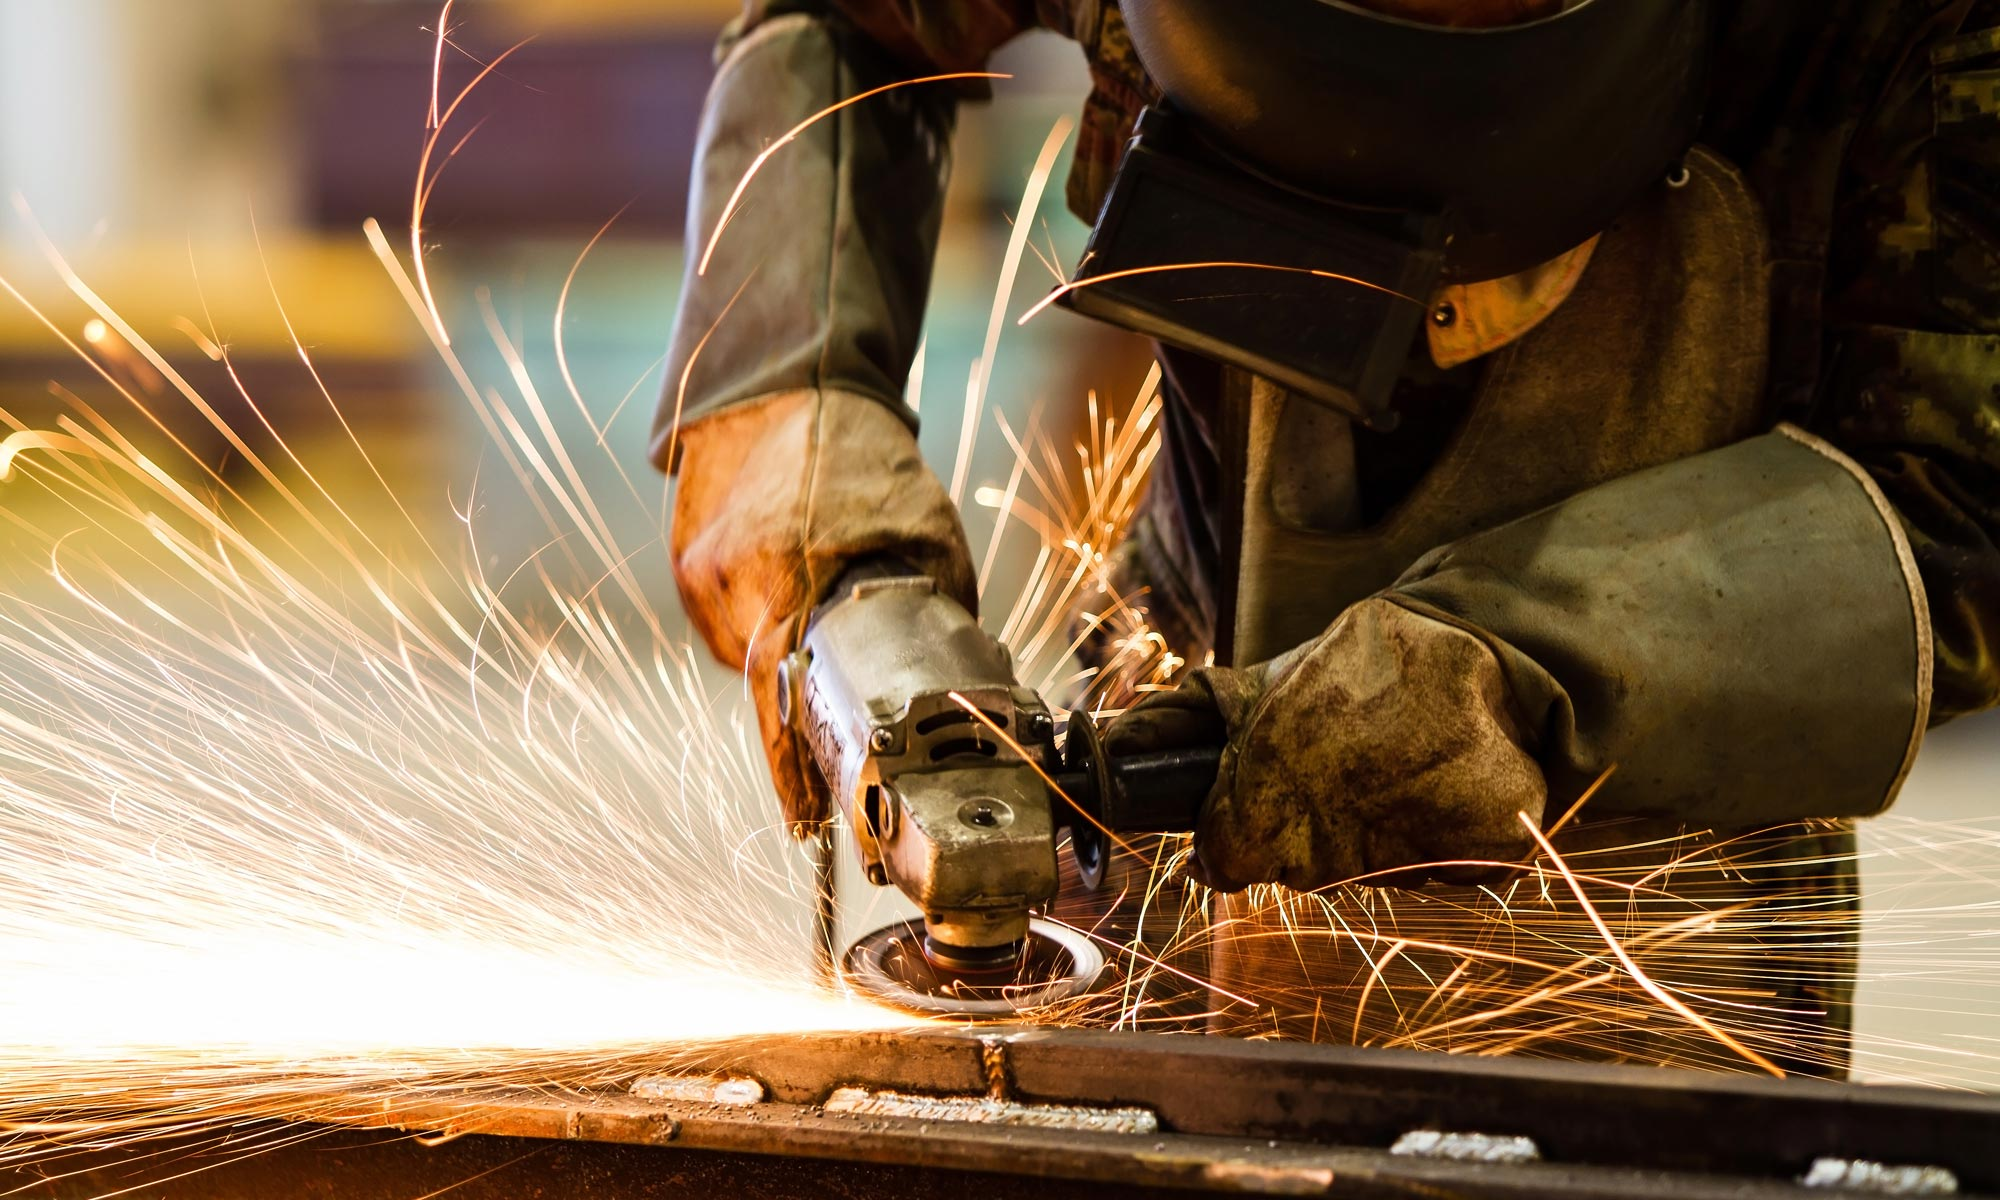 Metal grinding and fabrication